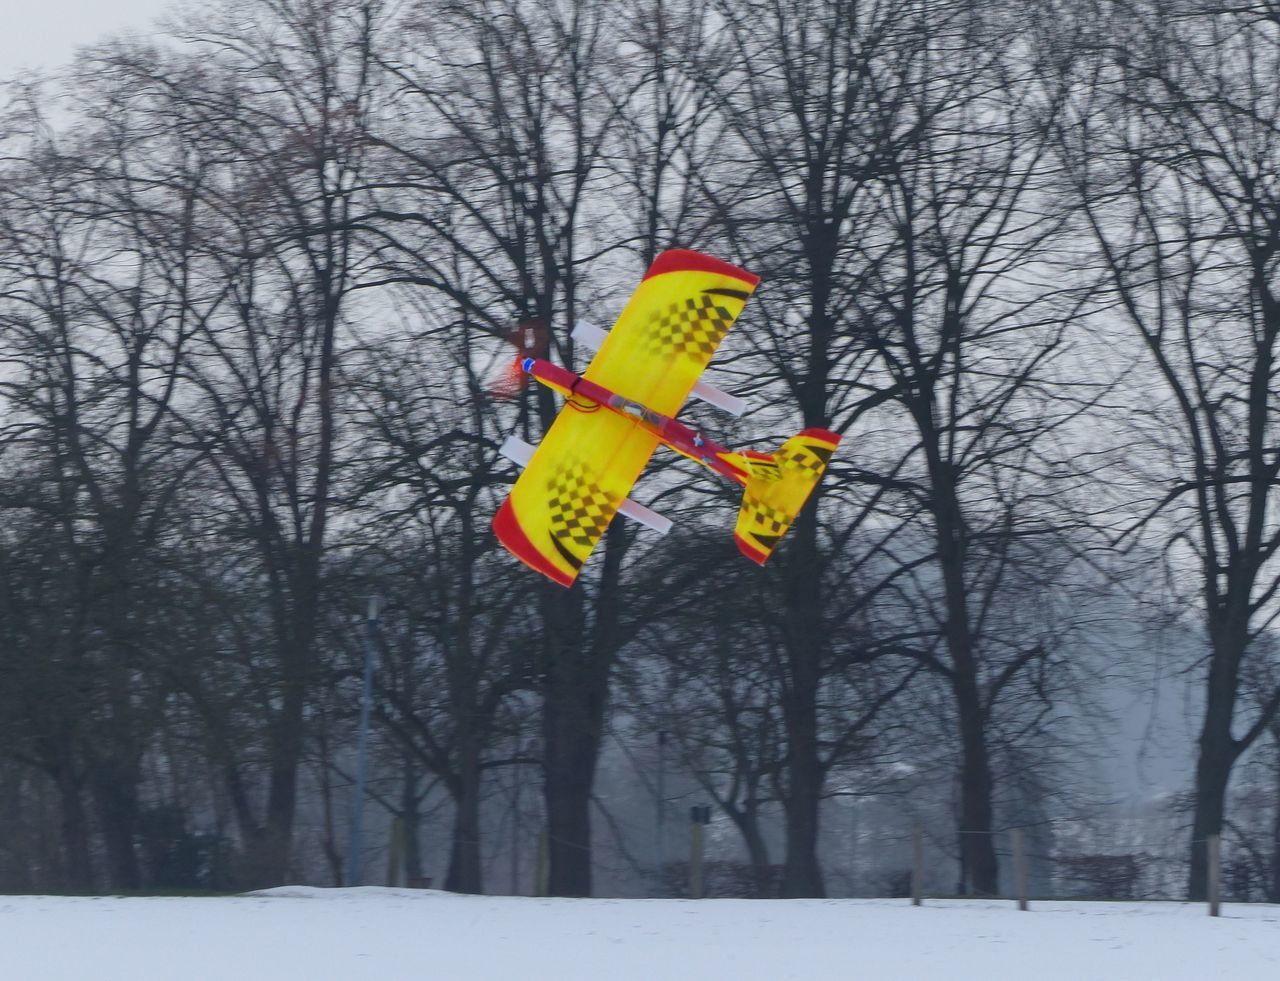 Winter Snow Tree Bare Tree Cold Temperature Nature Outdoors Snowing RC Modelplane Plane Aircraft Adrenaline Junkie Adrenalin